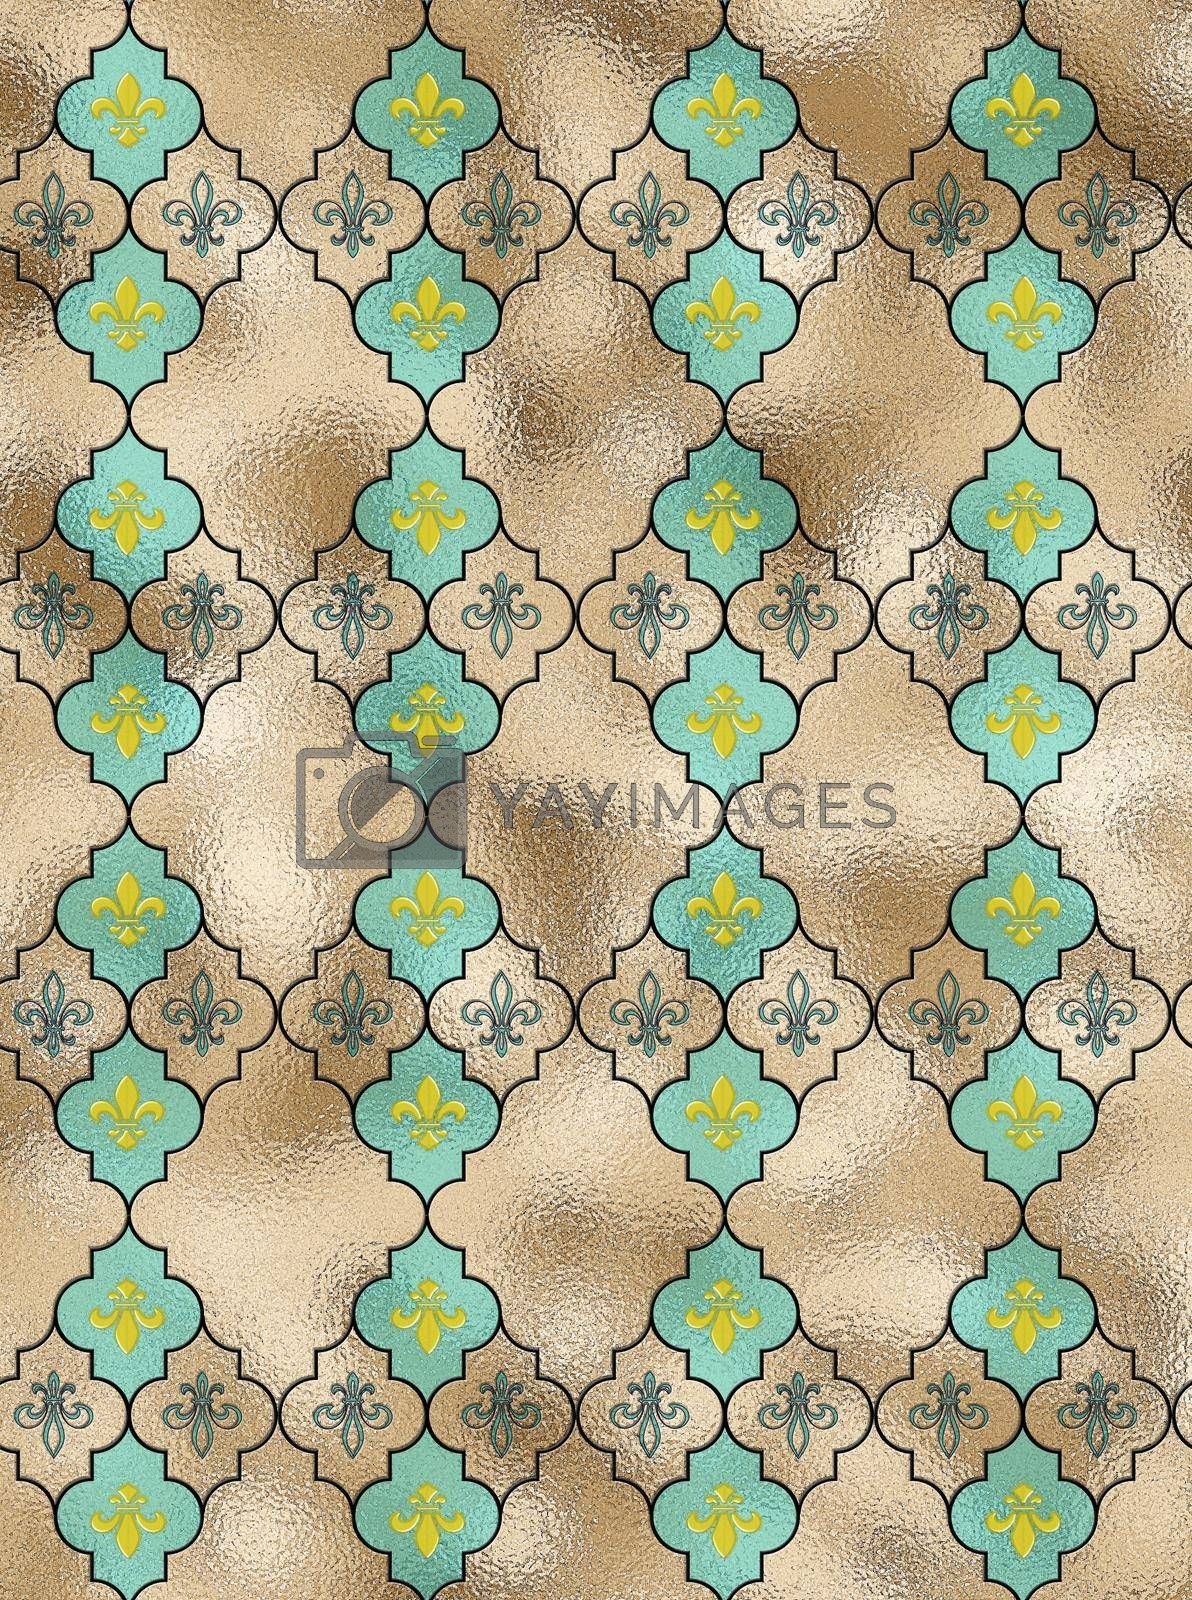 fleur-de-lis French seamless pattern with turquoise blue repeat motif lily fleur-de-Lis on gold shiny background, Illustration